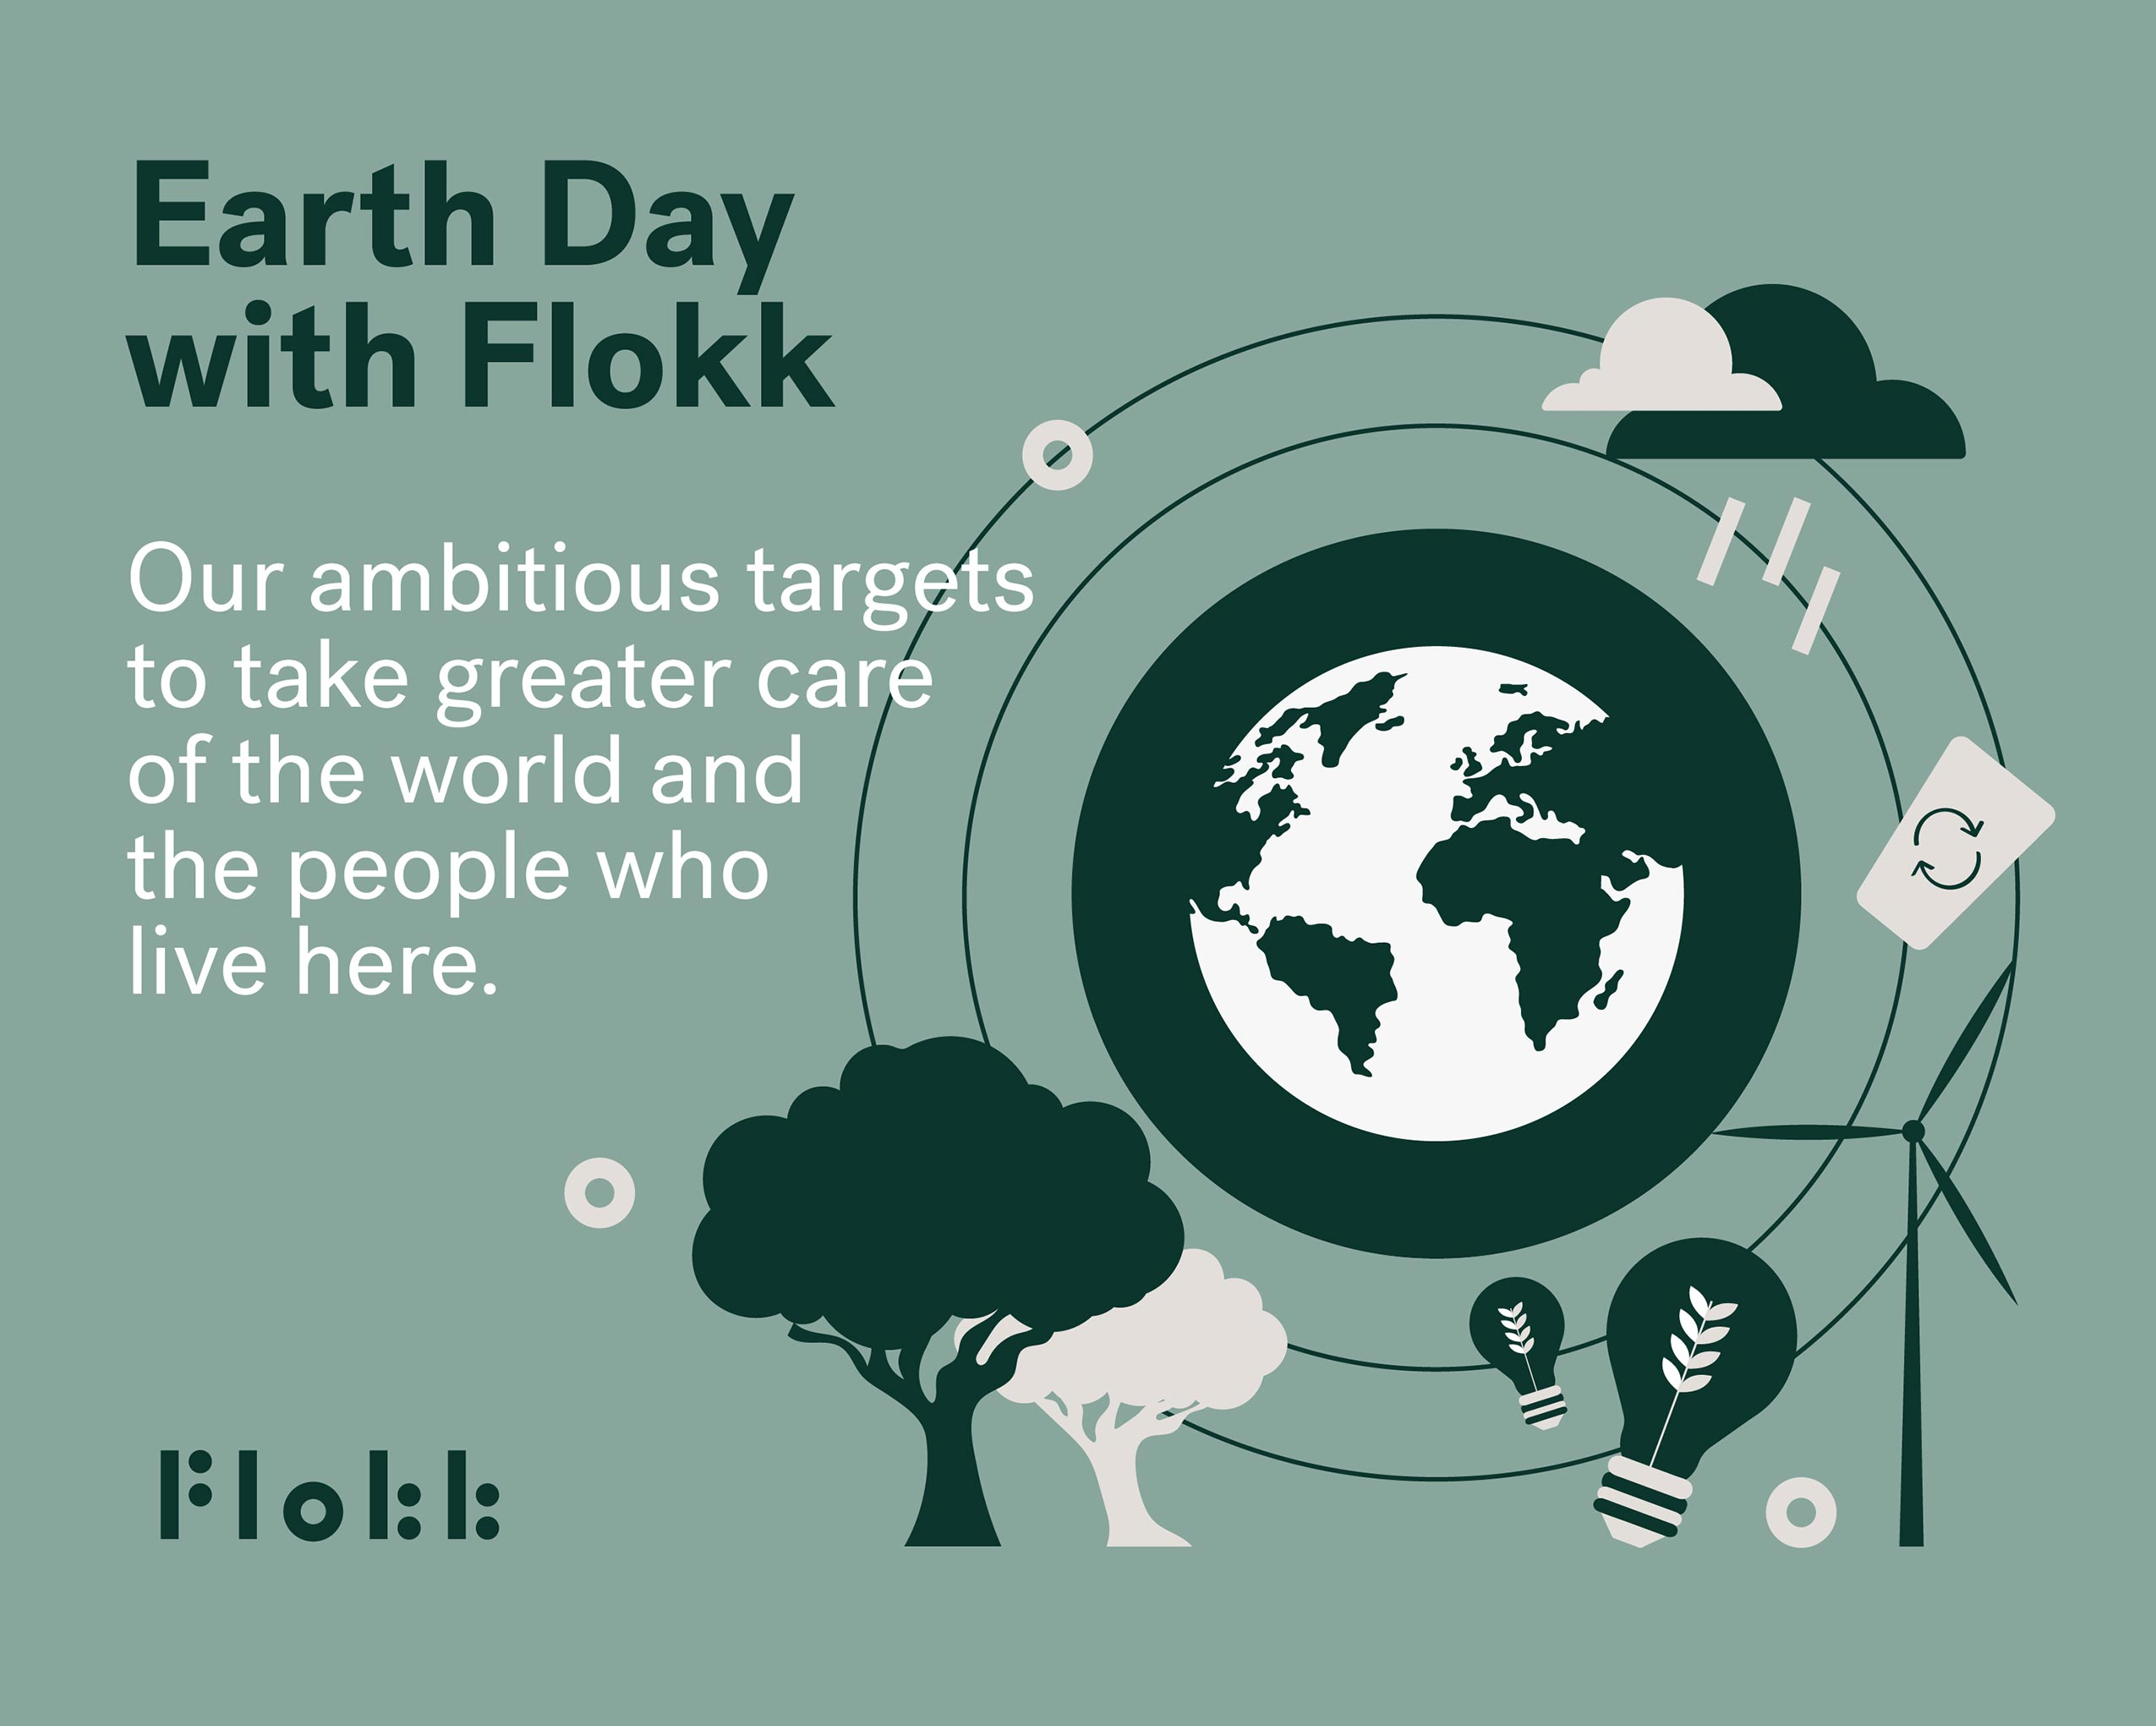 Earth-Day-with-Flokk-05_web